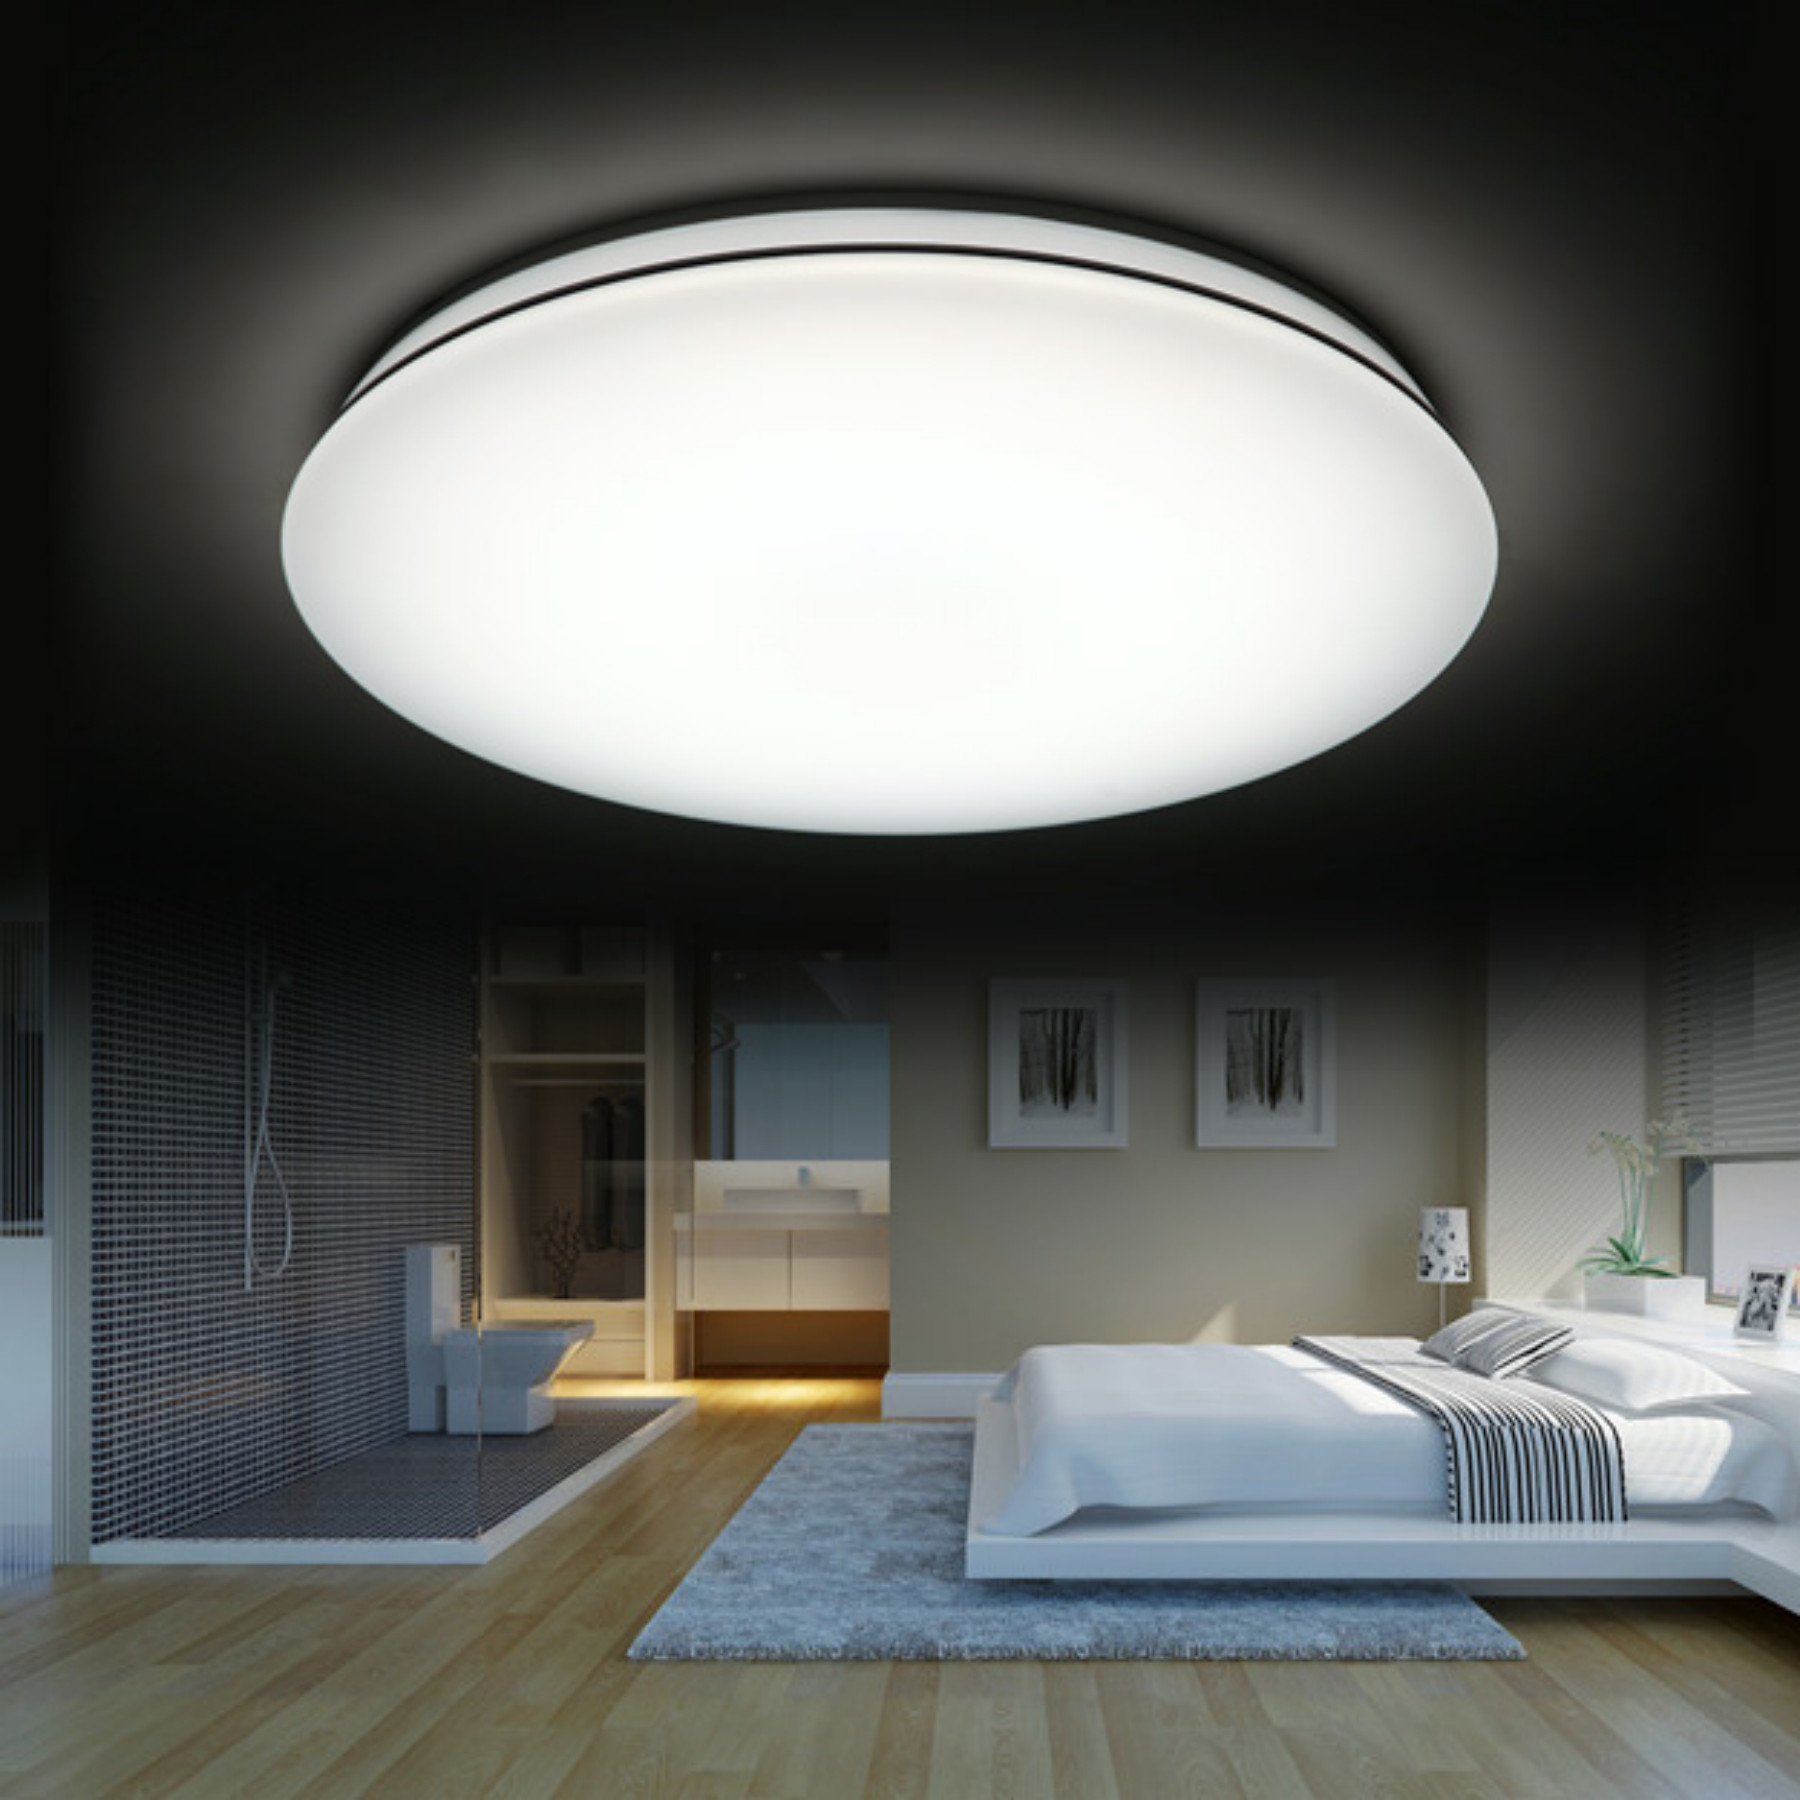 High Brightness Ceiling Mounted Luminaire High Power Factor Without Ripple Wave